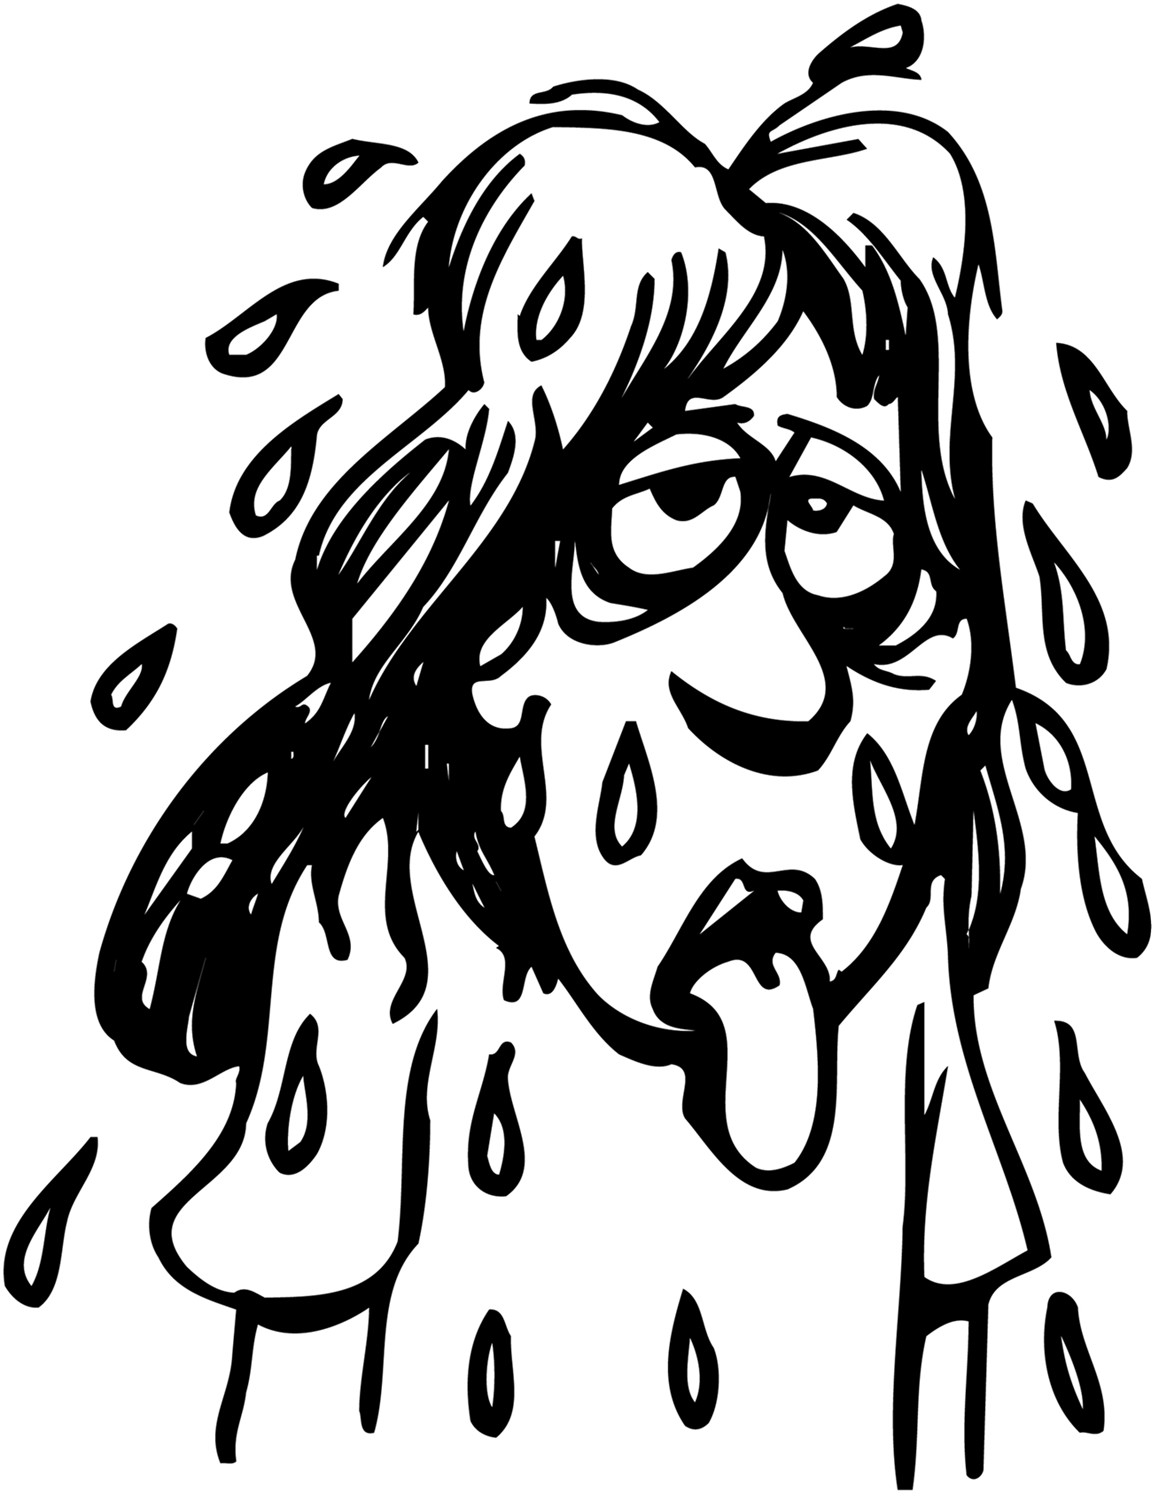 Person Sweating Clip Art N3 free image.